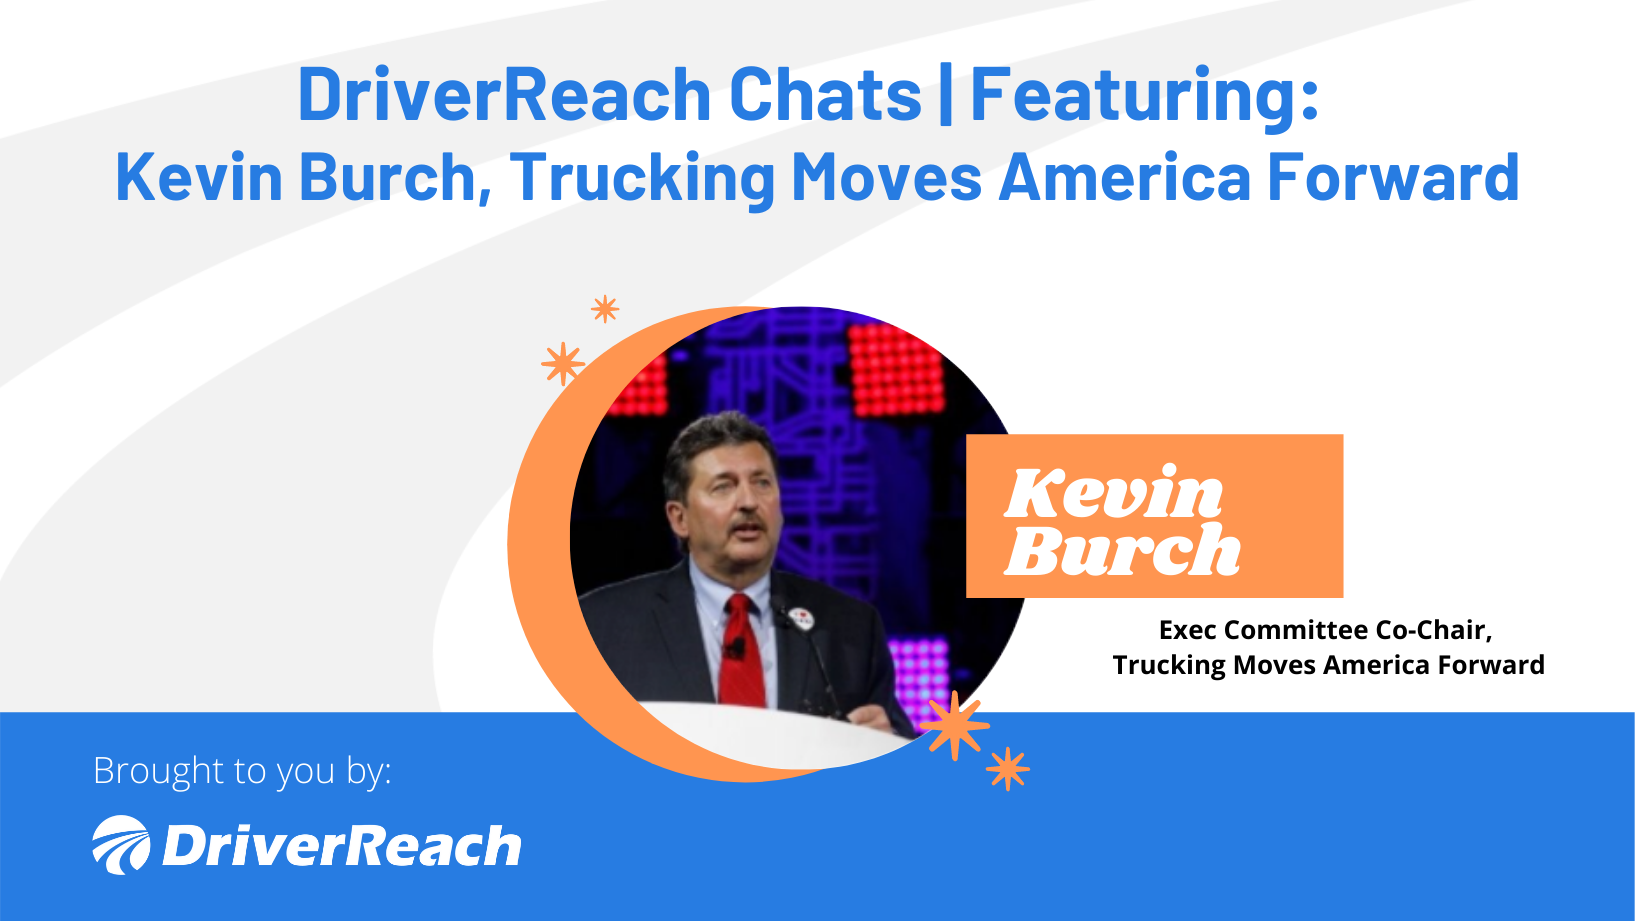 DriverReach Chats | Kevin Burch, Co-Chairman, Trucking Moves America Forward (TMAF)